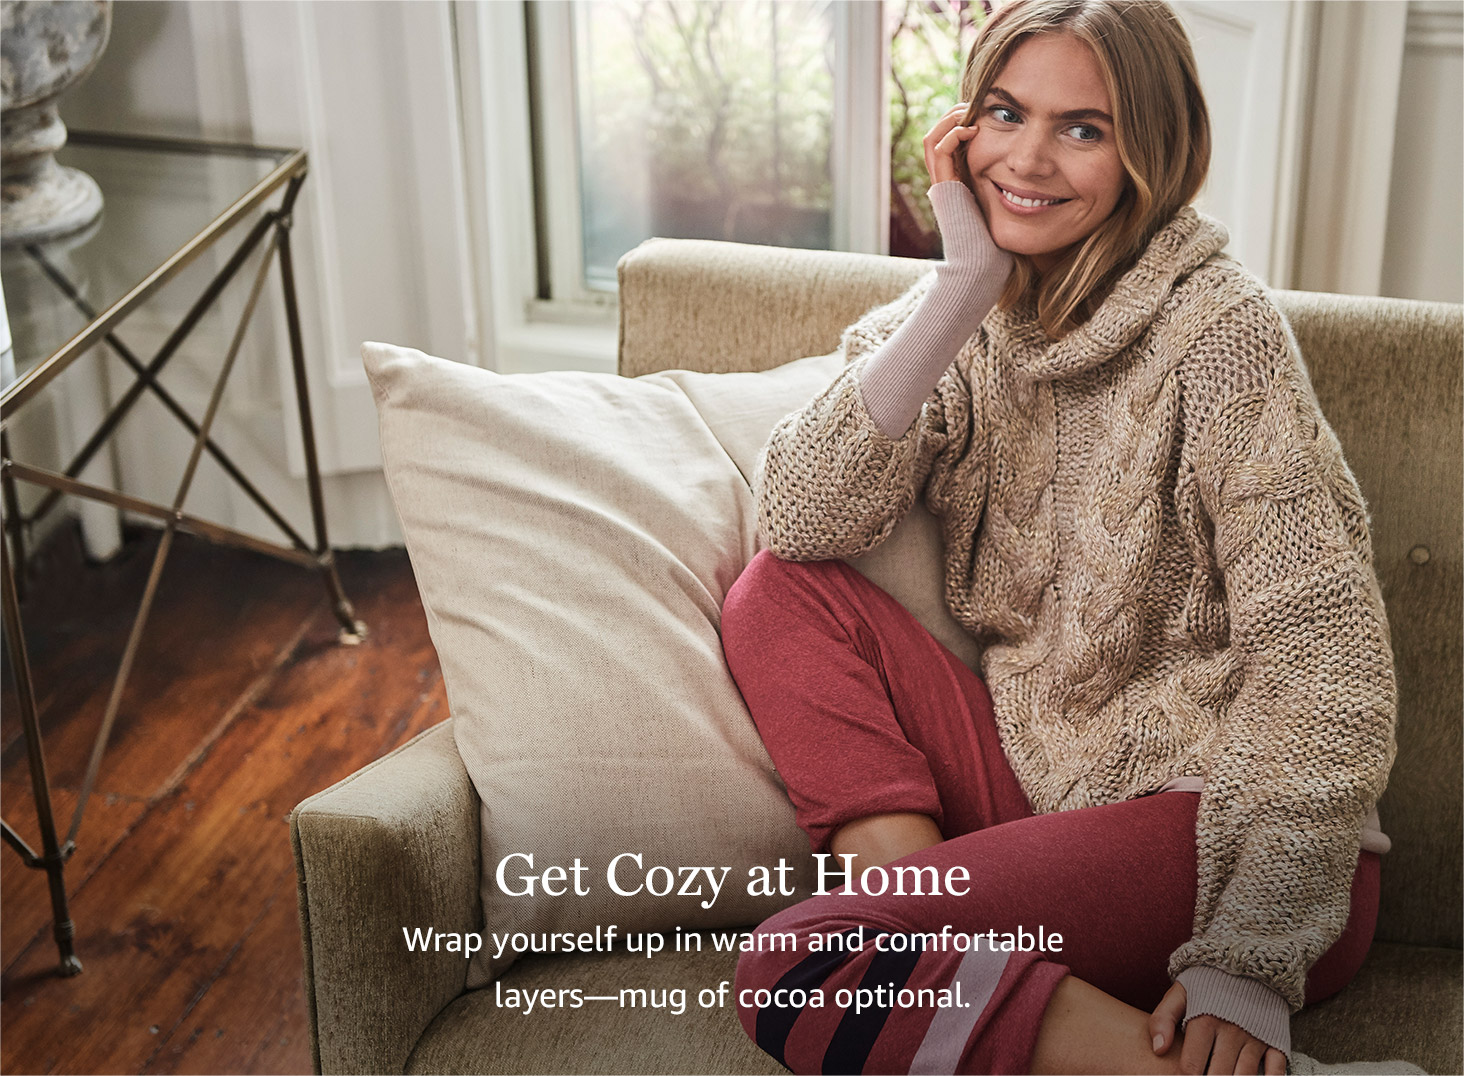 Get cozy at home